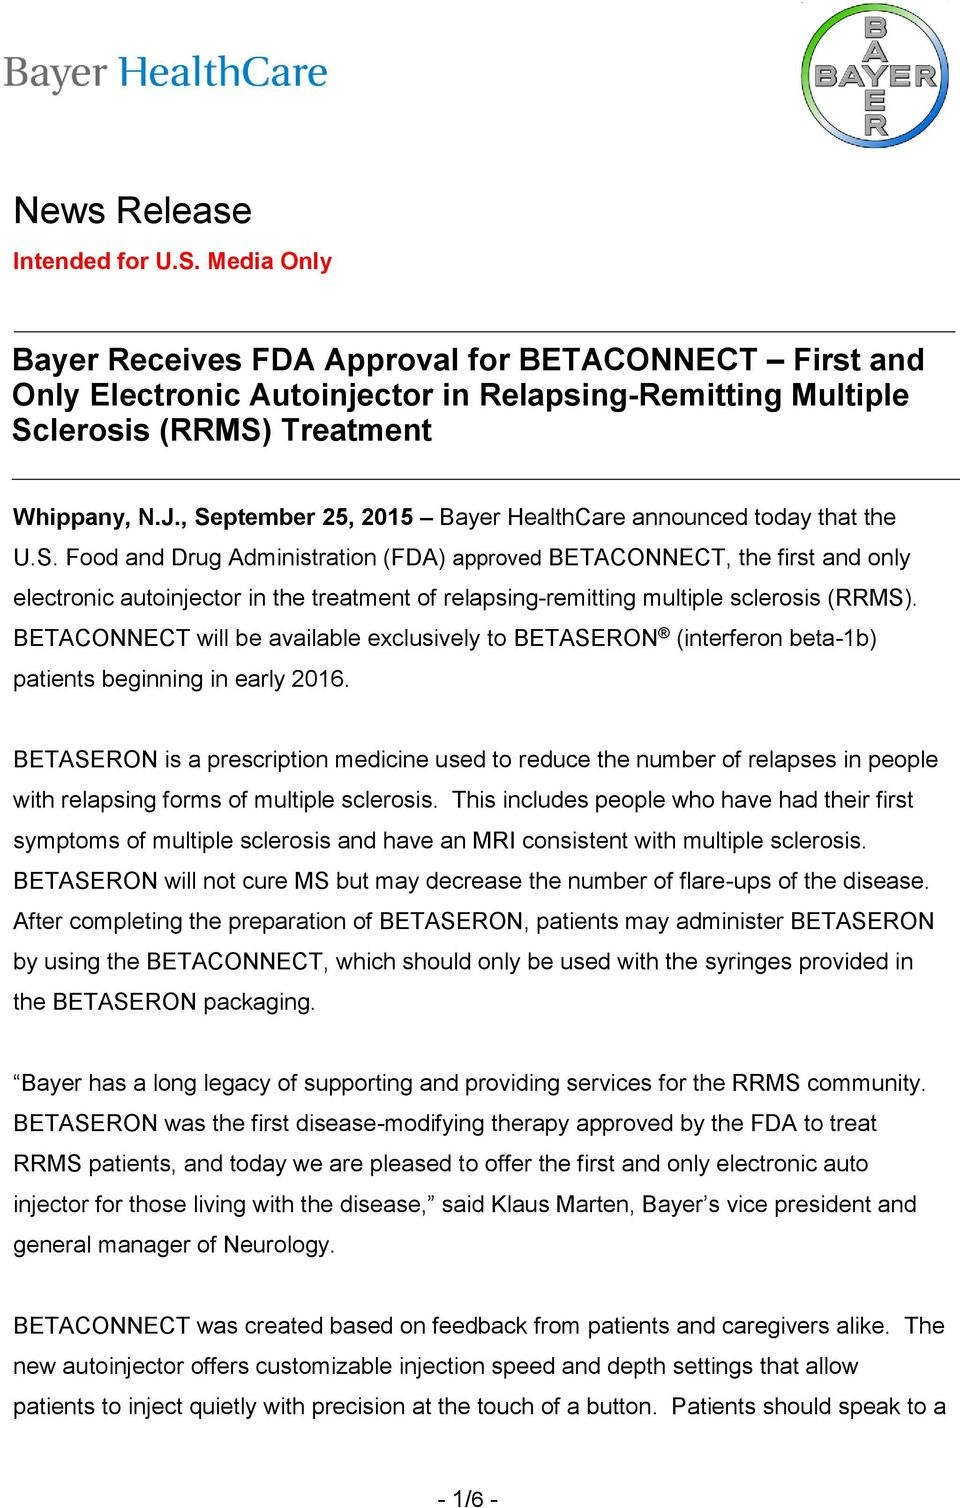 BETACONNECT will be available exclusively to BETASERON (interferon beta-1b) patients beginning in early 2016.